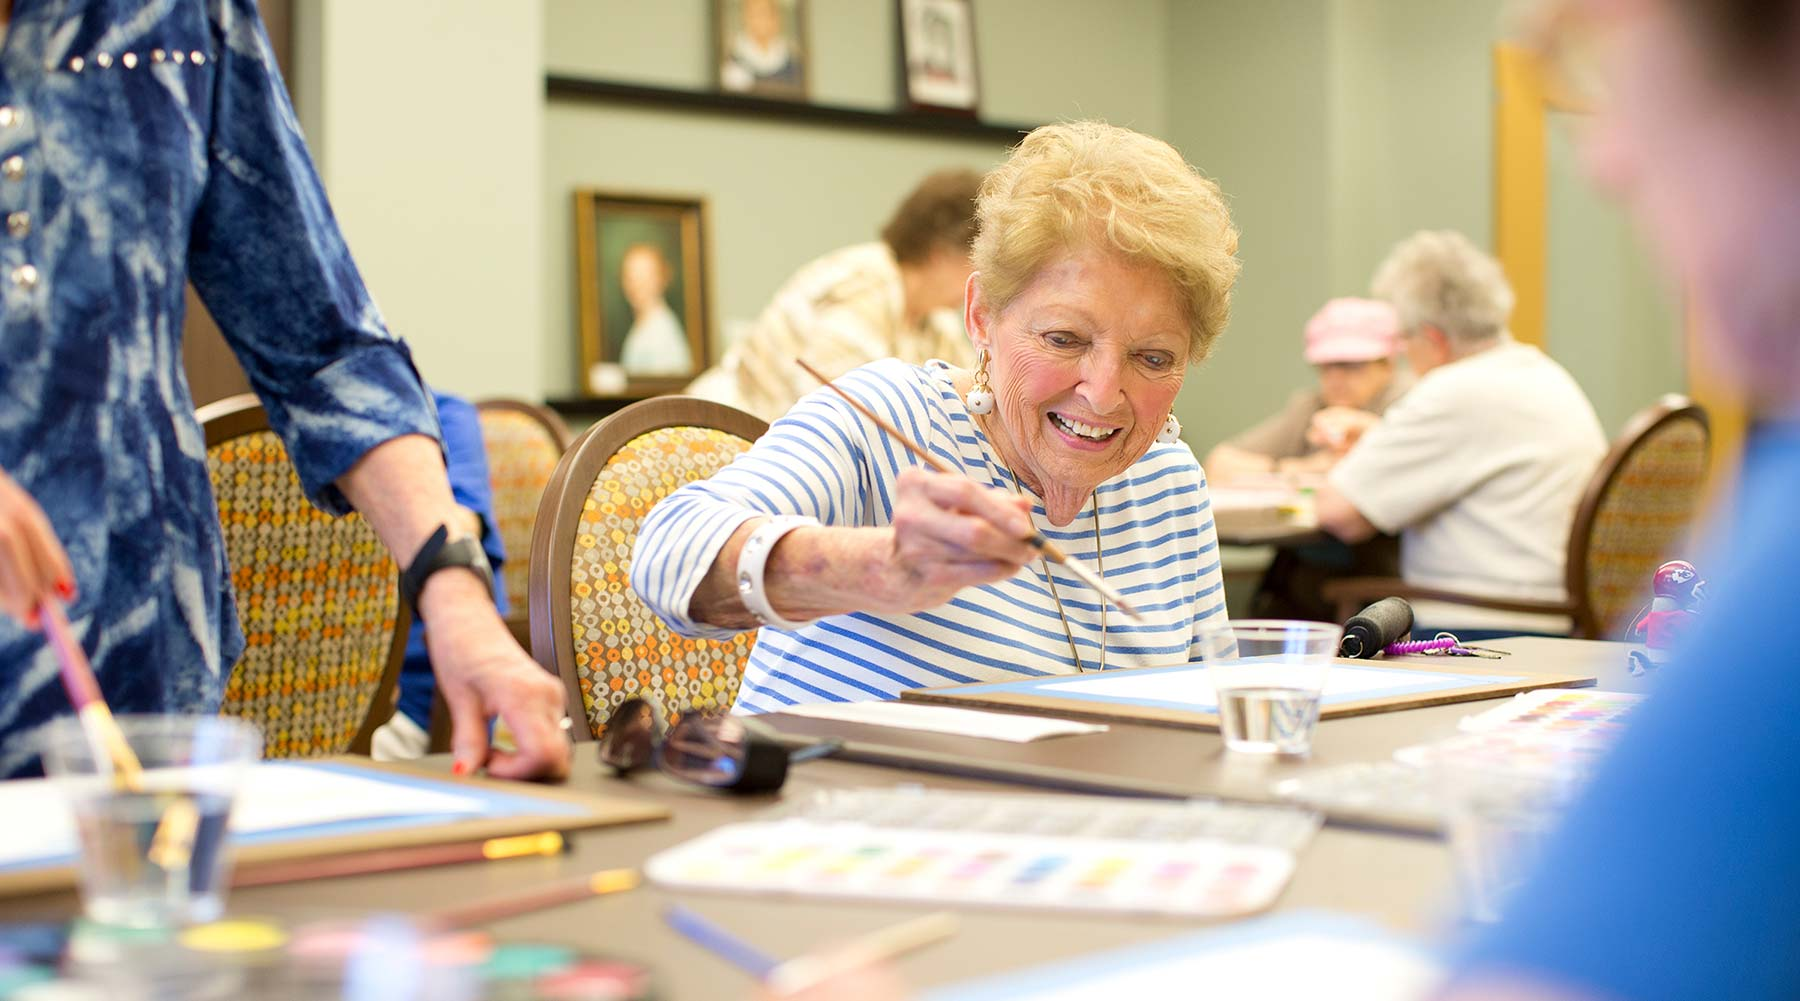 A women painting in the art room at Kingswood Senior Living Located in Kansas City, MO.